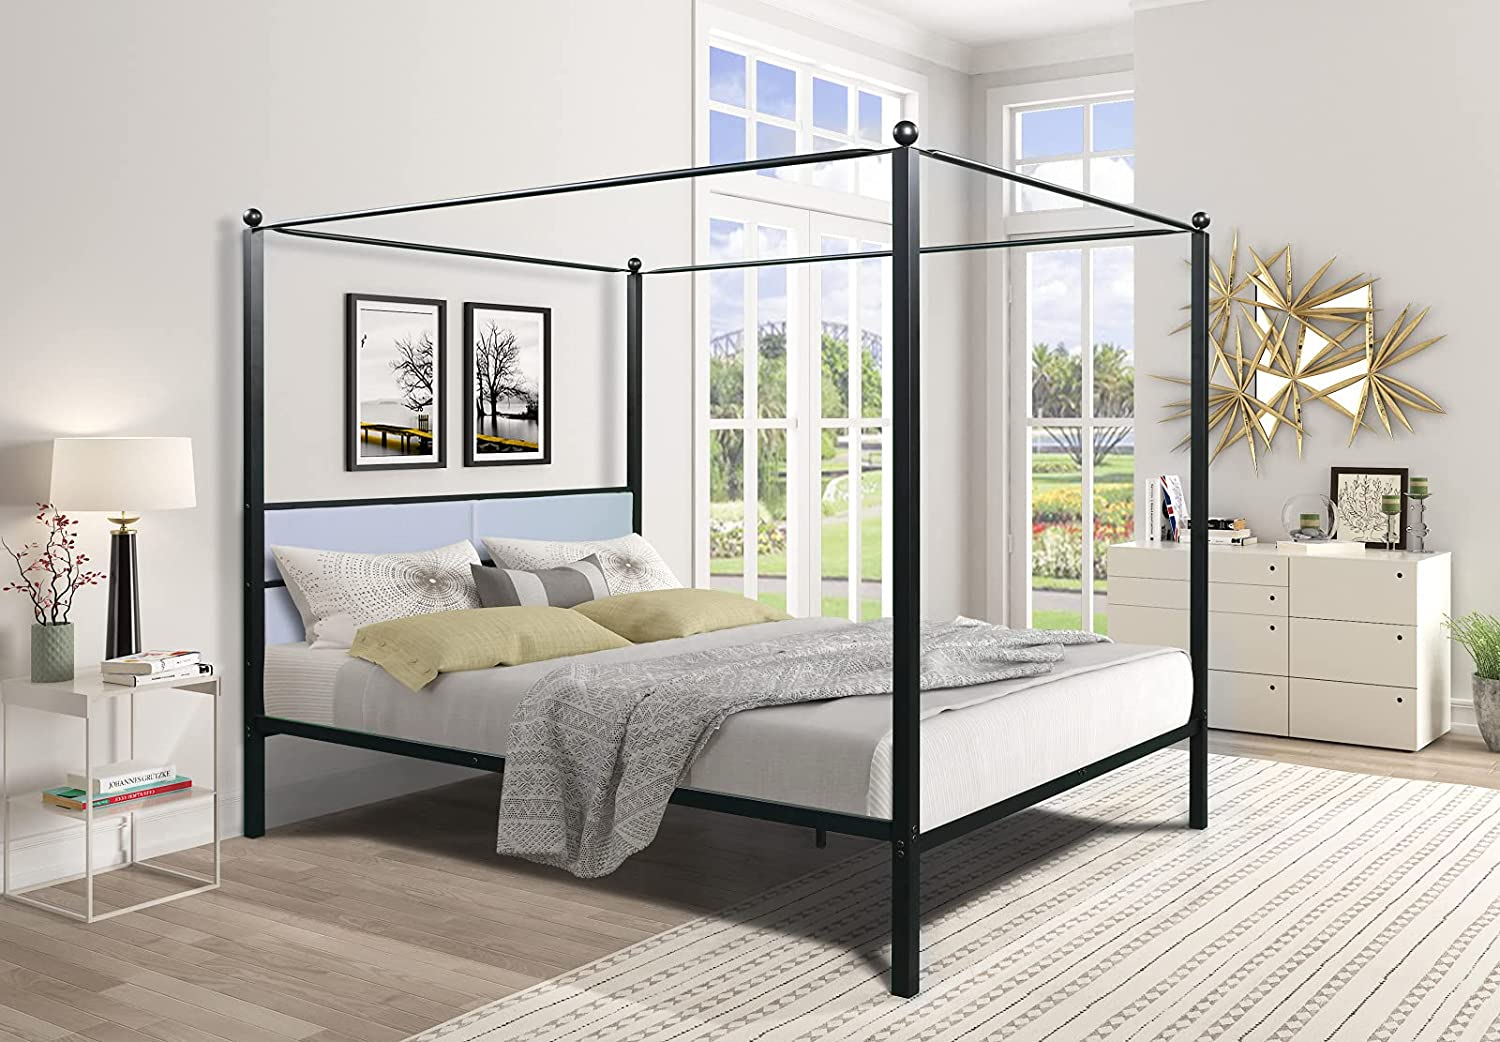 TITA-DONG Queen Canopy Store Metal Frame Upholstered Sale Four-Poster Bed